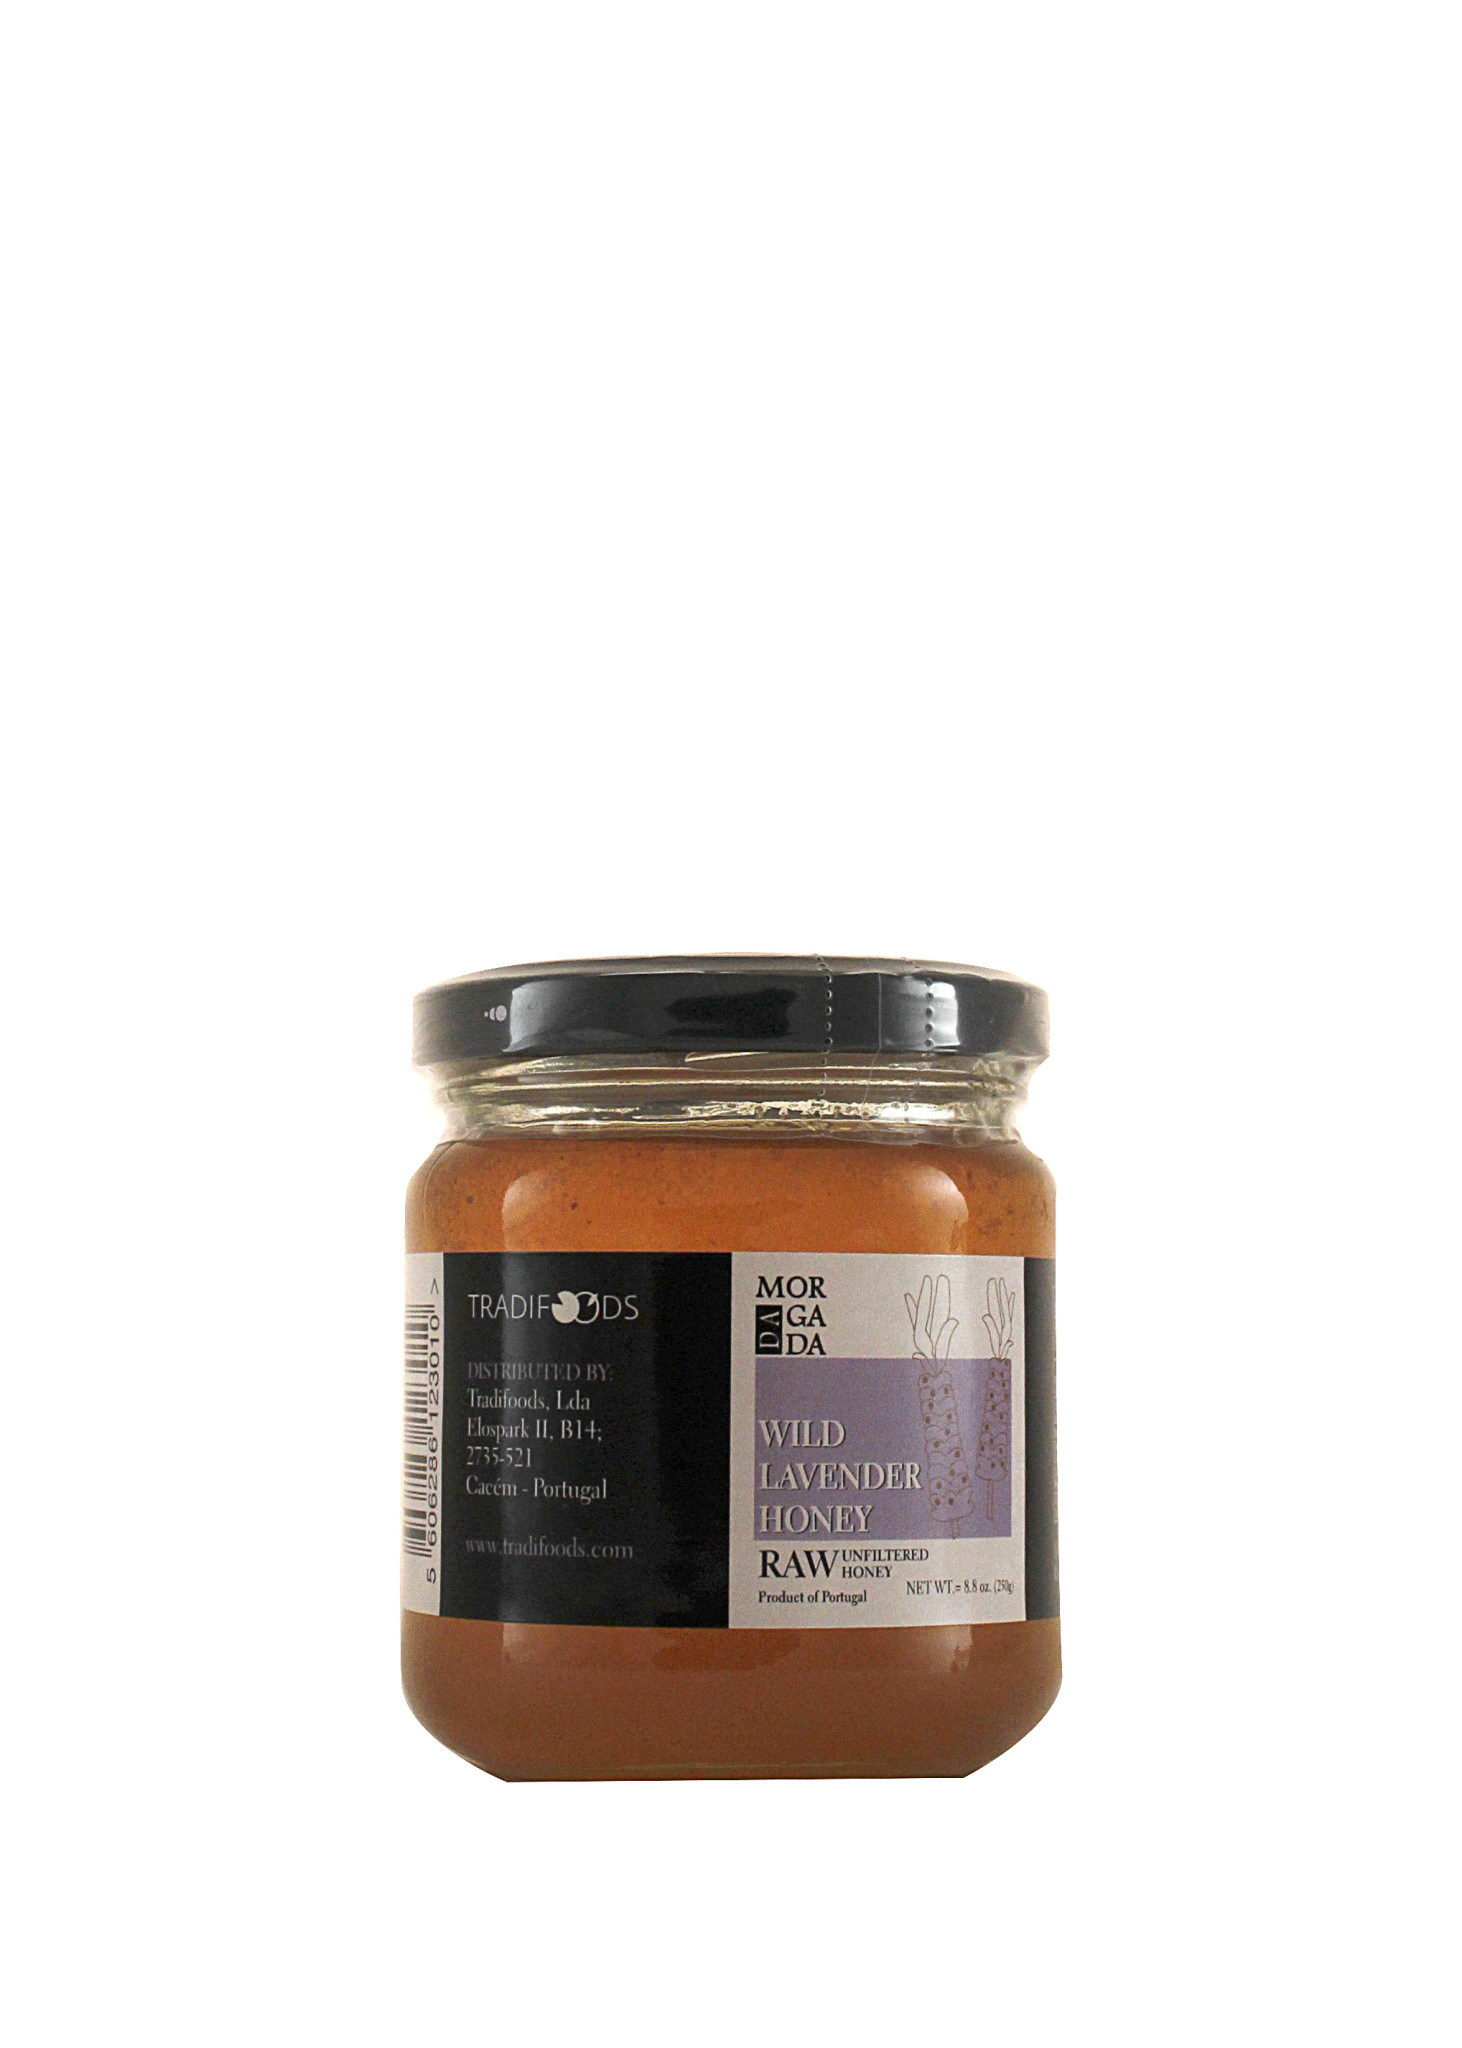 Morgada Wild Lavender Raw Honey, Portugal